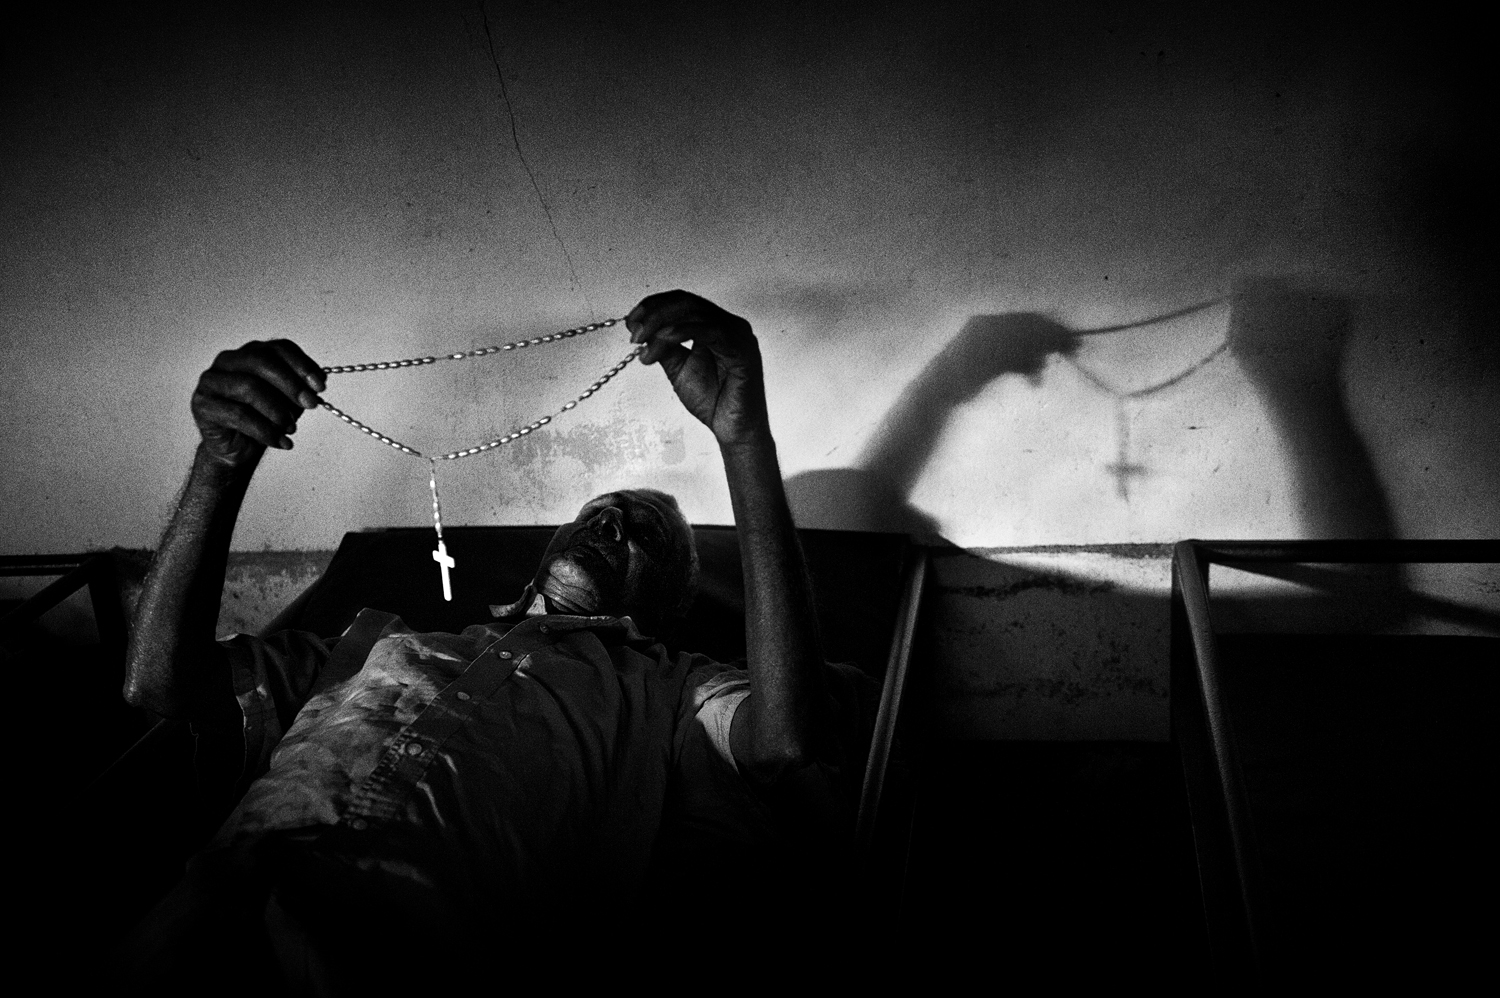 A patient suffering from suspected of mental illness prays on his bunk in Cochin, Kerala.                               In the state, three religions coexist peacefully: 55% Hindu, 25% Muslim and 20% Catholic. August 2009.